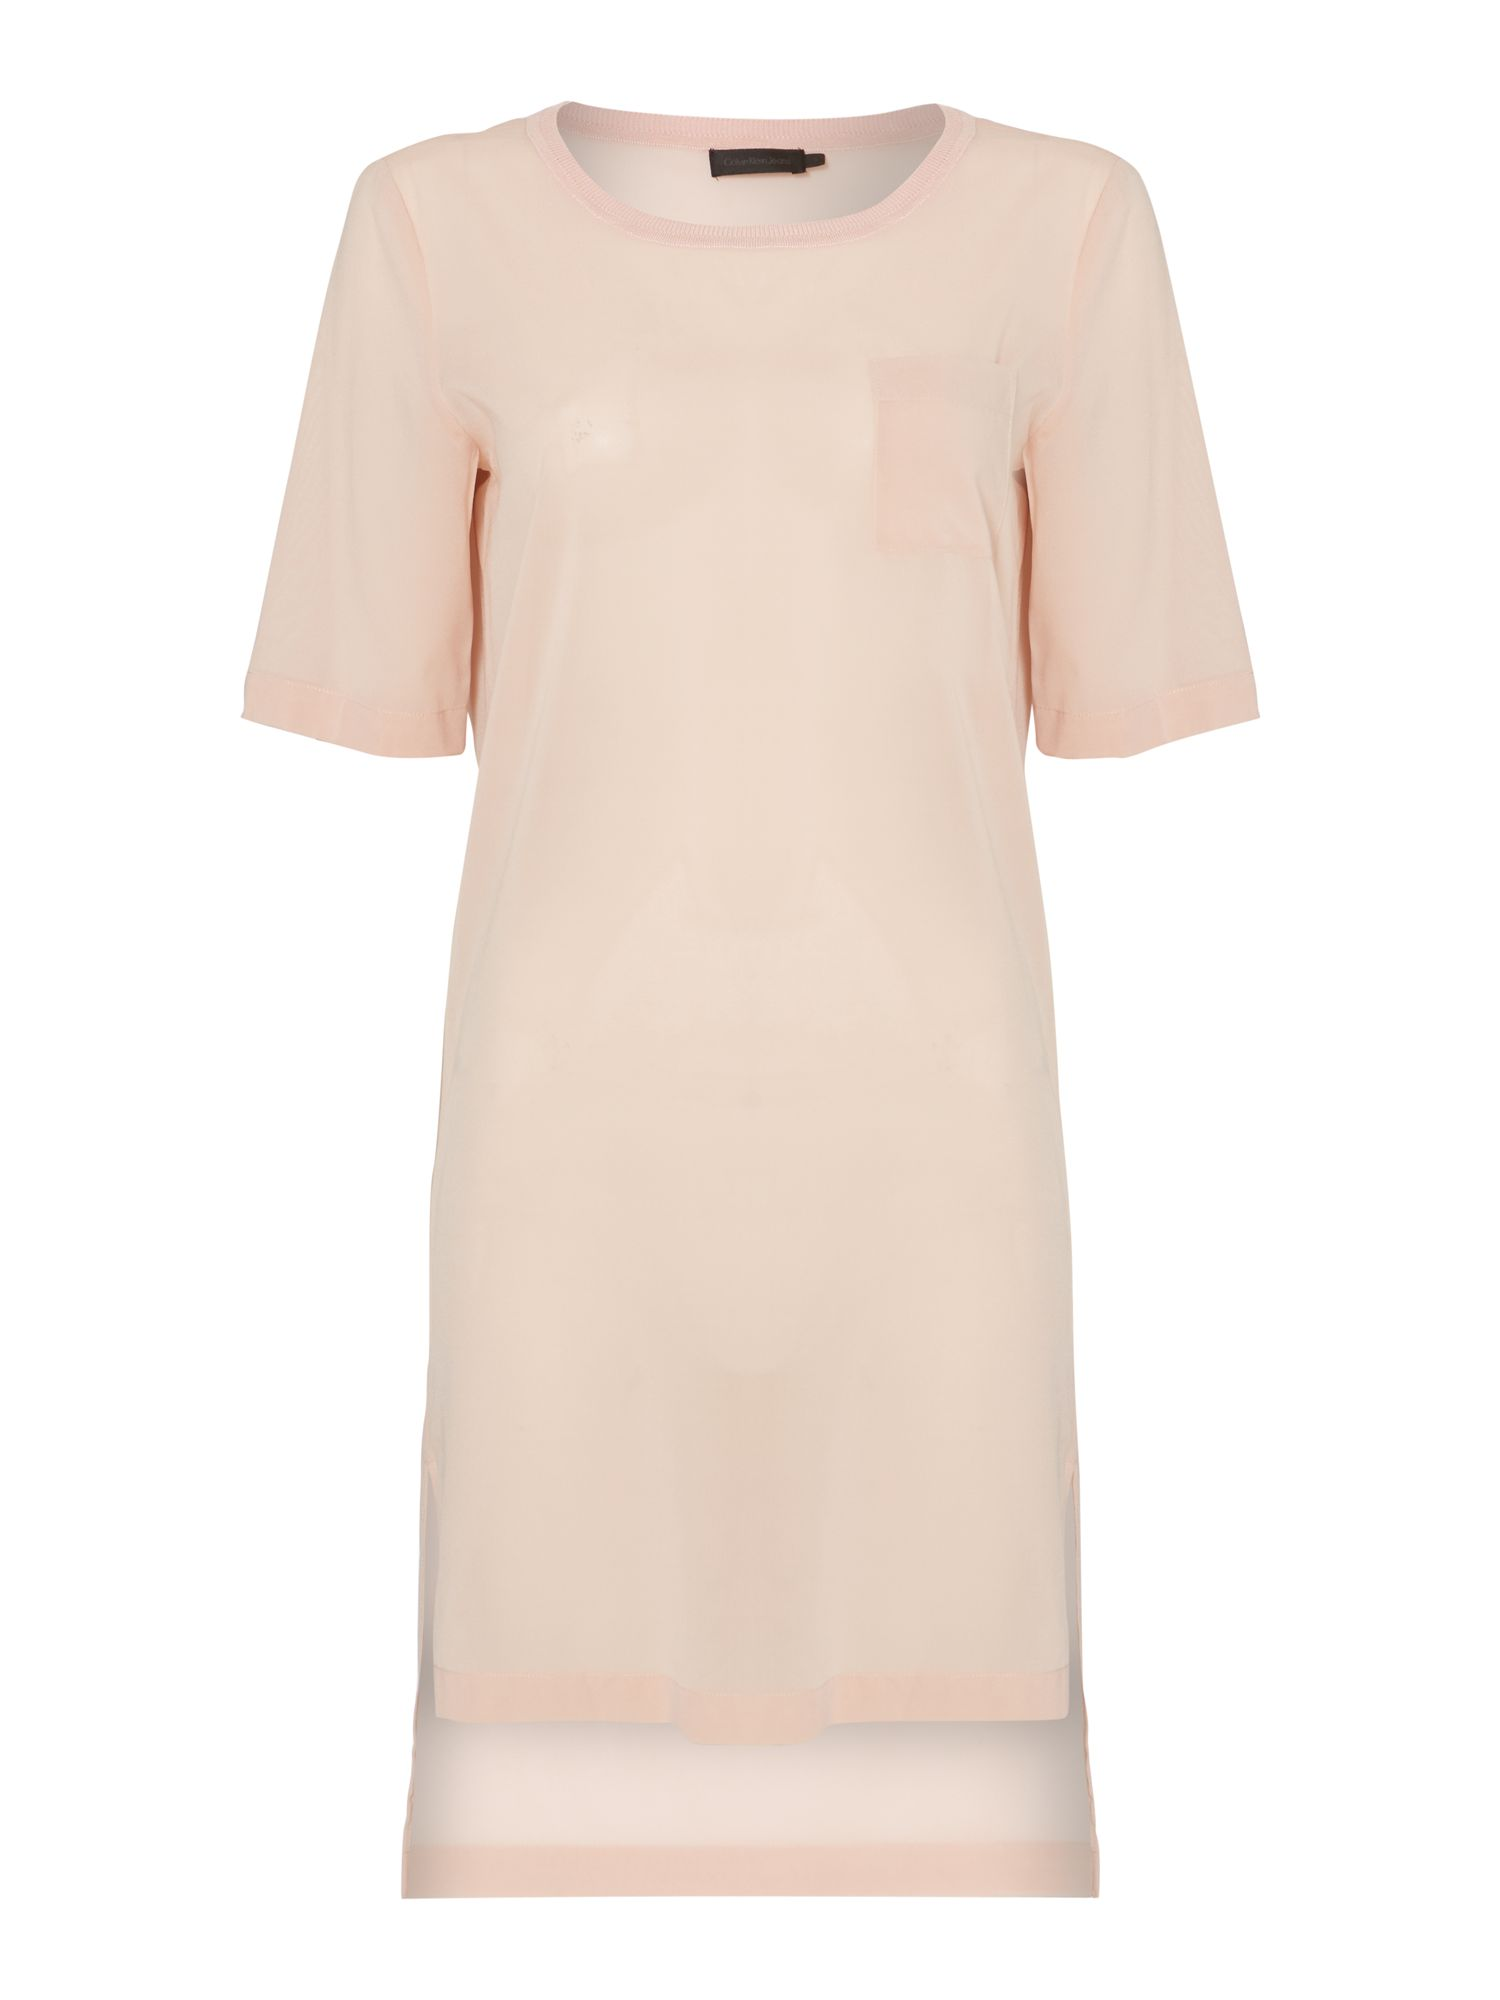 Welta short sleeve dress in cameo rose